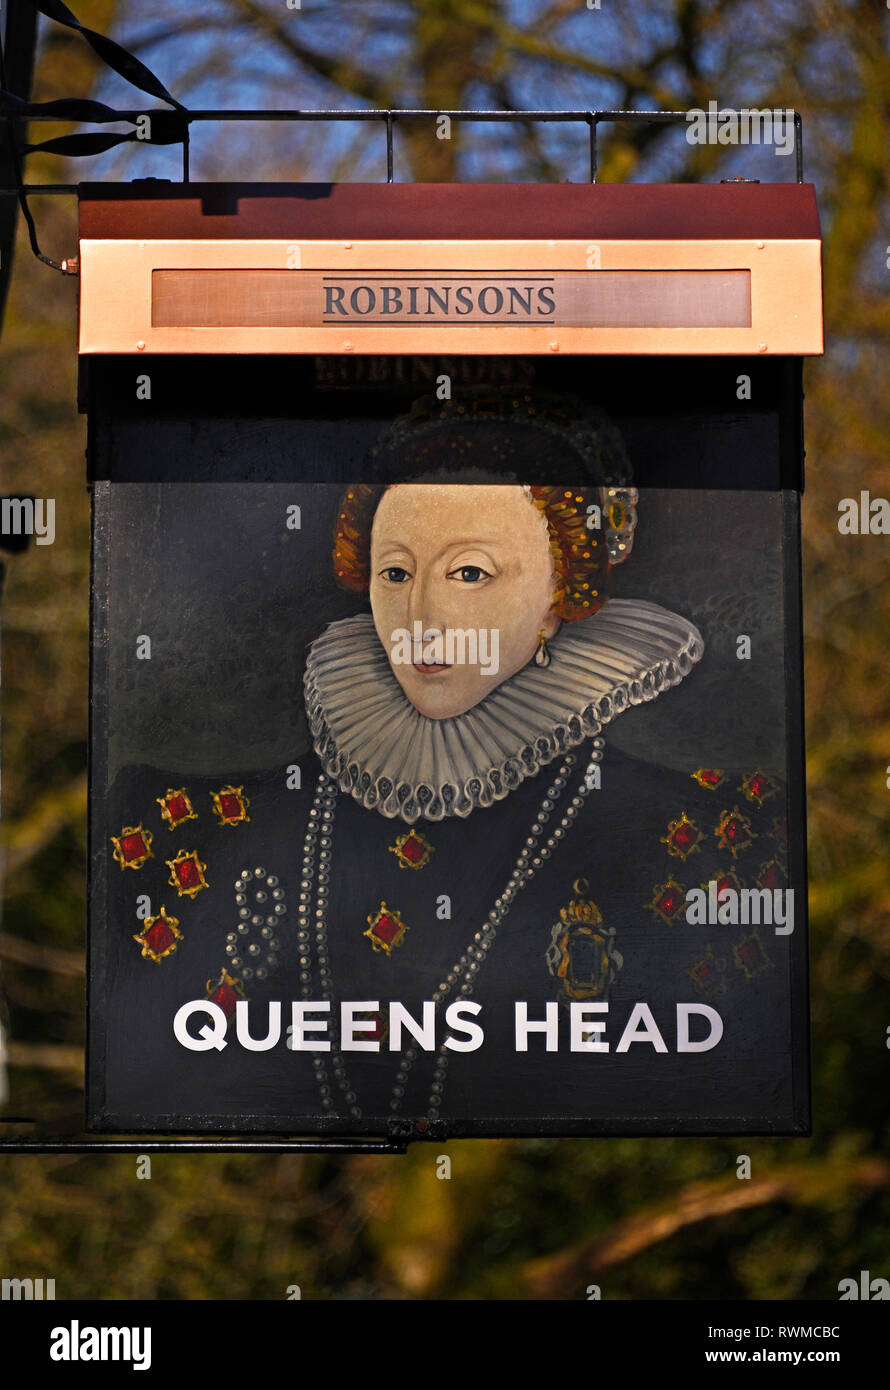 Inn sign. Queen's Head Hotel. Troutbeck, Windermere, Lake District National Park, Cumbria, England, United Kingdom, Europe. - Stock Image